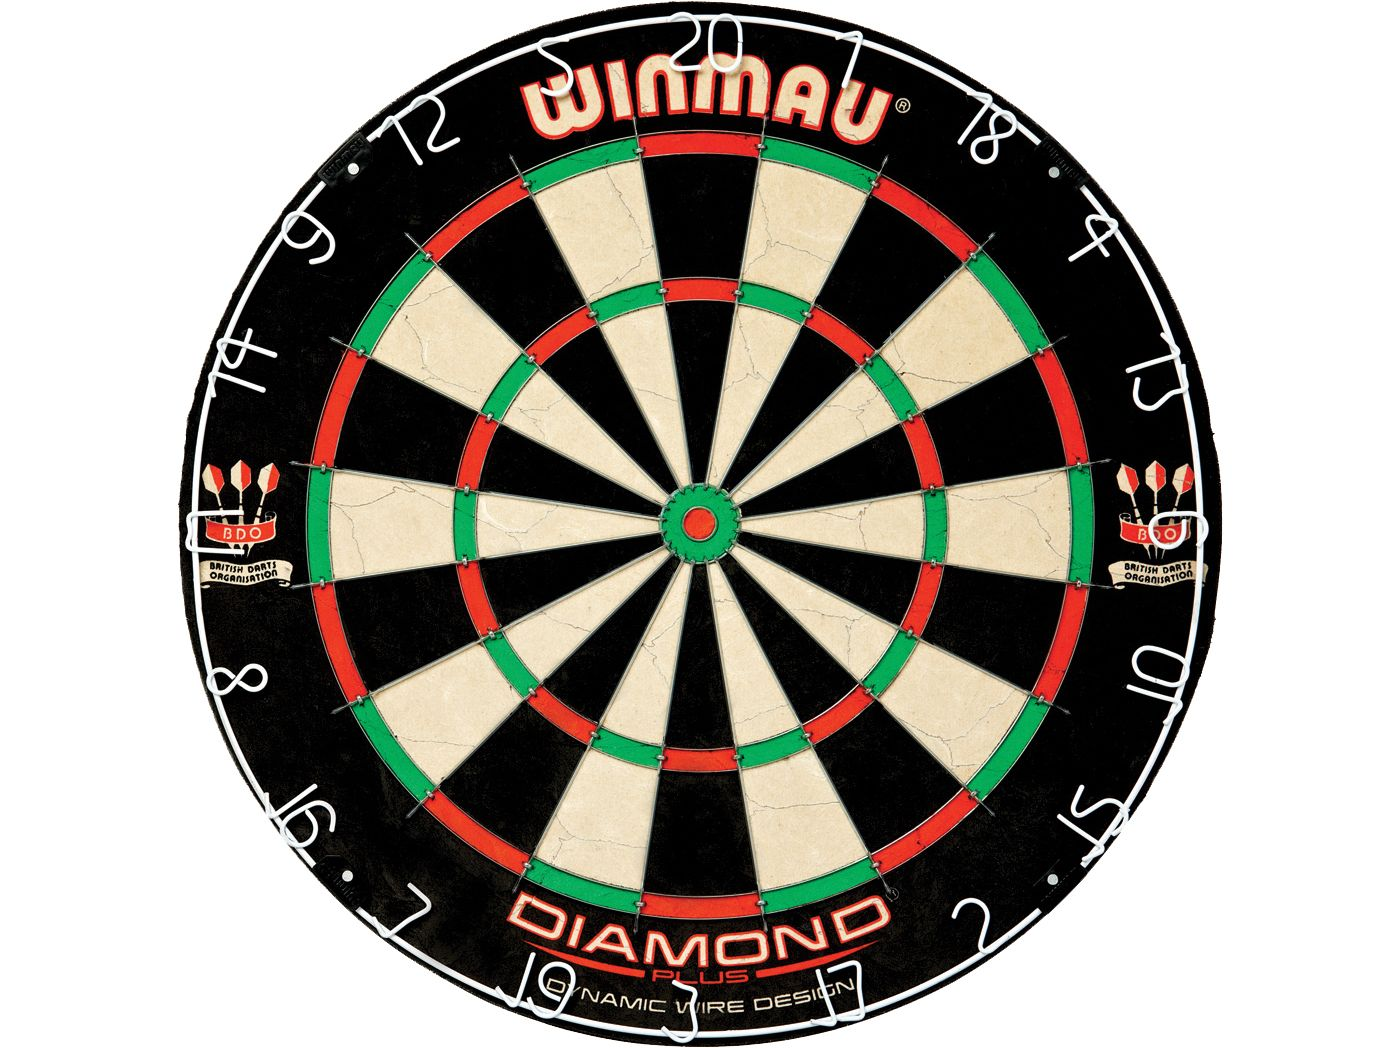 Winmau Diamond Bristle Dartboard